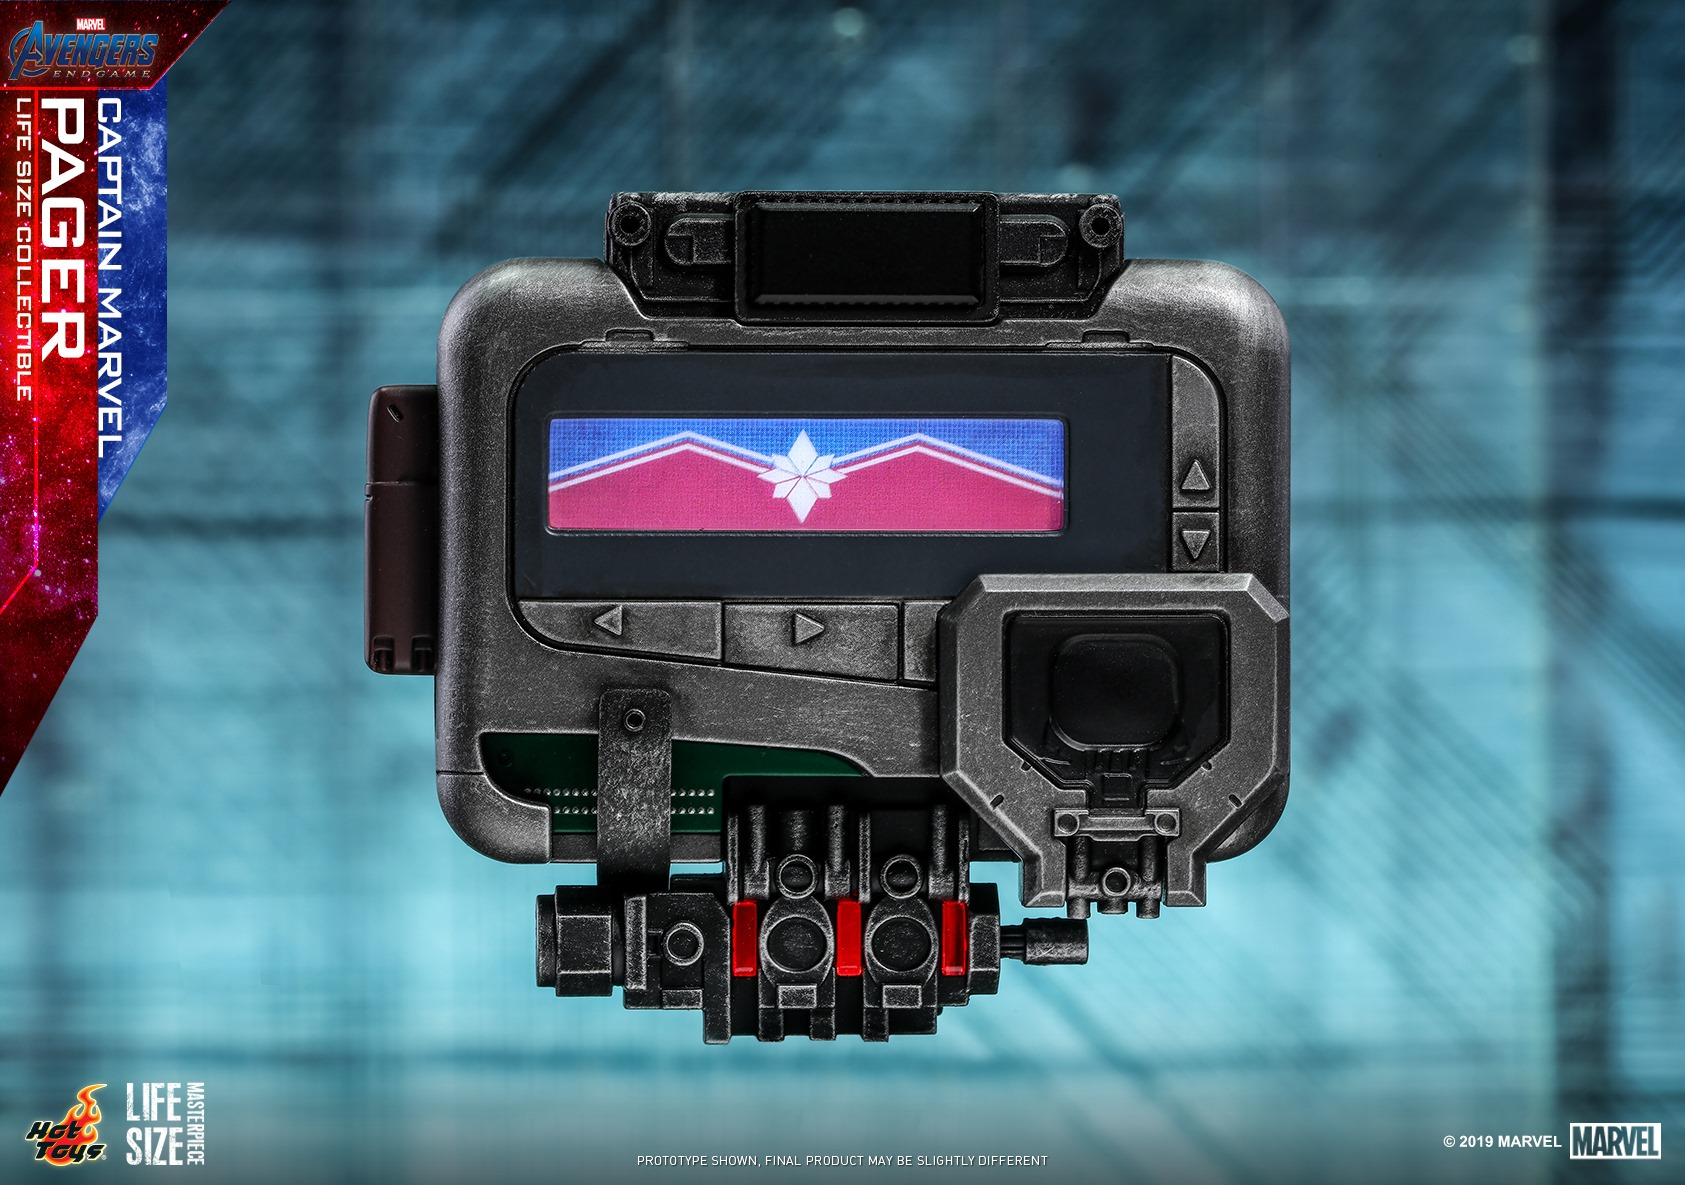 Life Size Captain Marvel Pager Collectible by Hot Toys - The ...